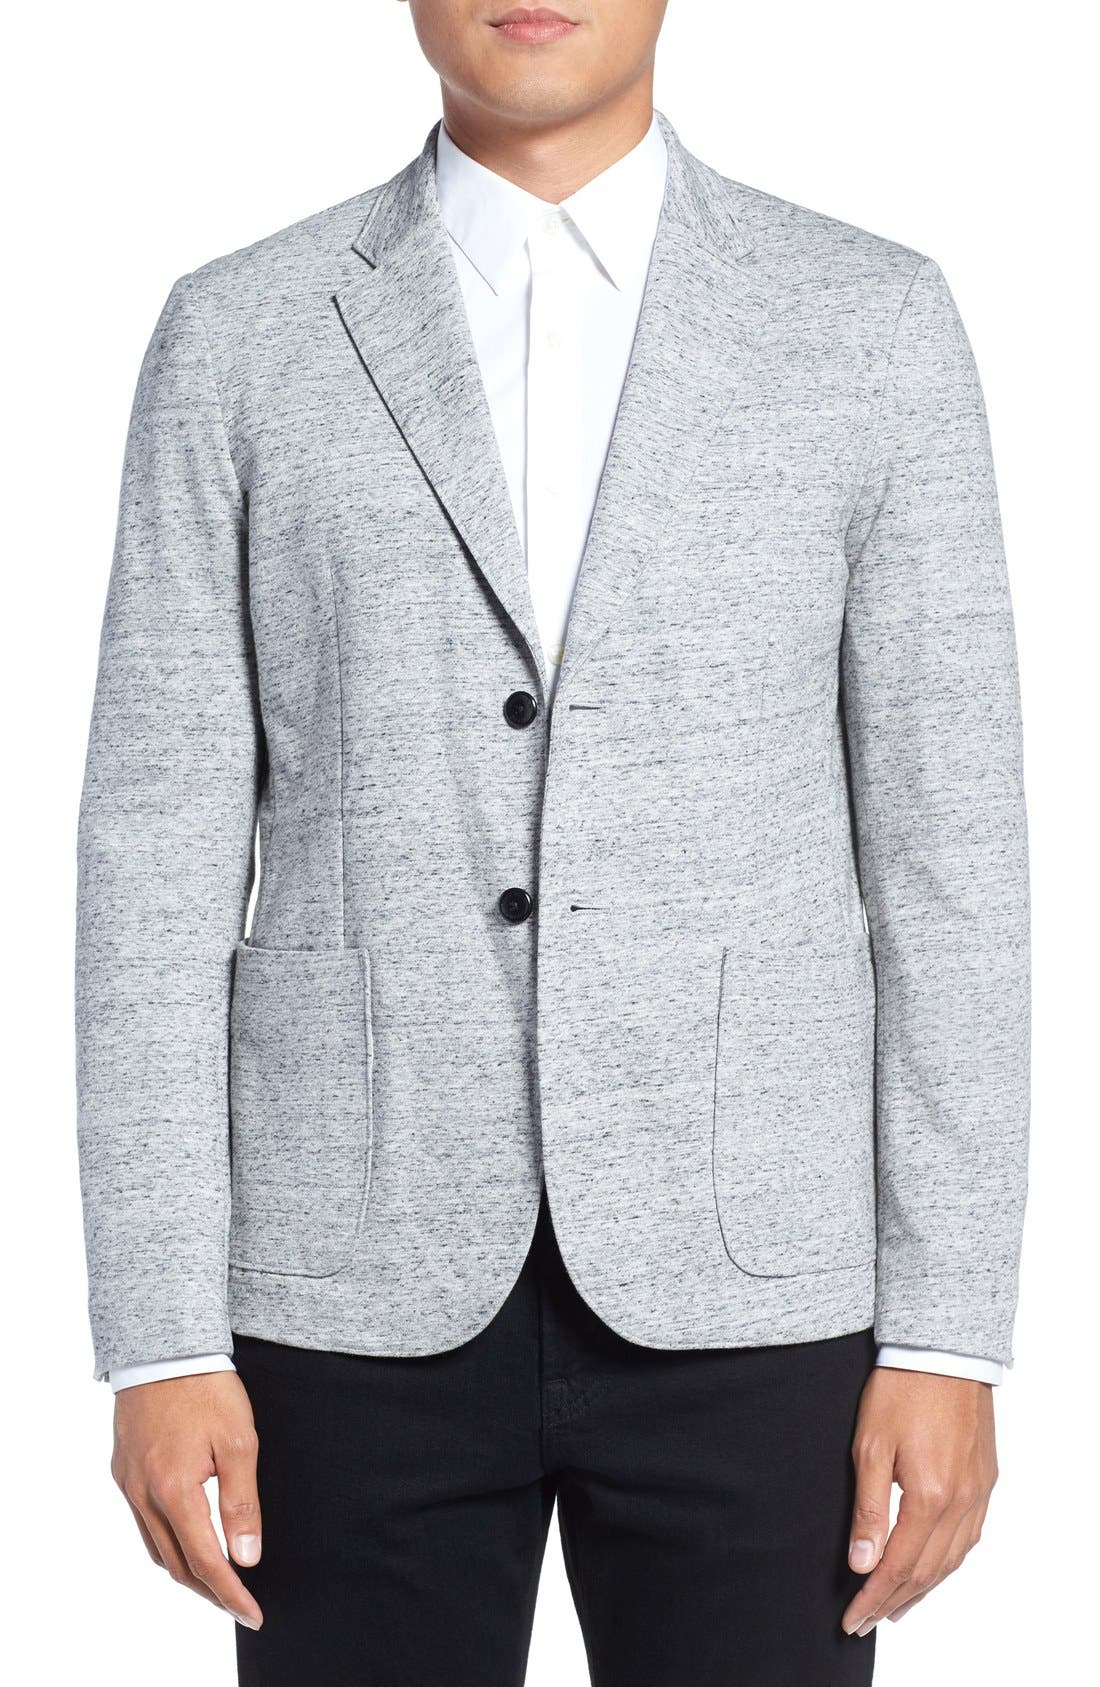 GOOD MAN BRAND Trim Fit Knit Blazer